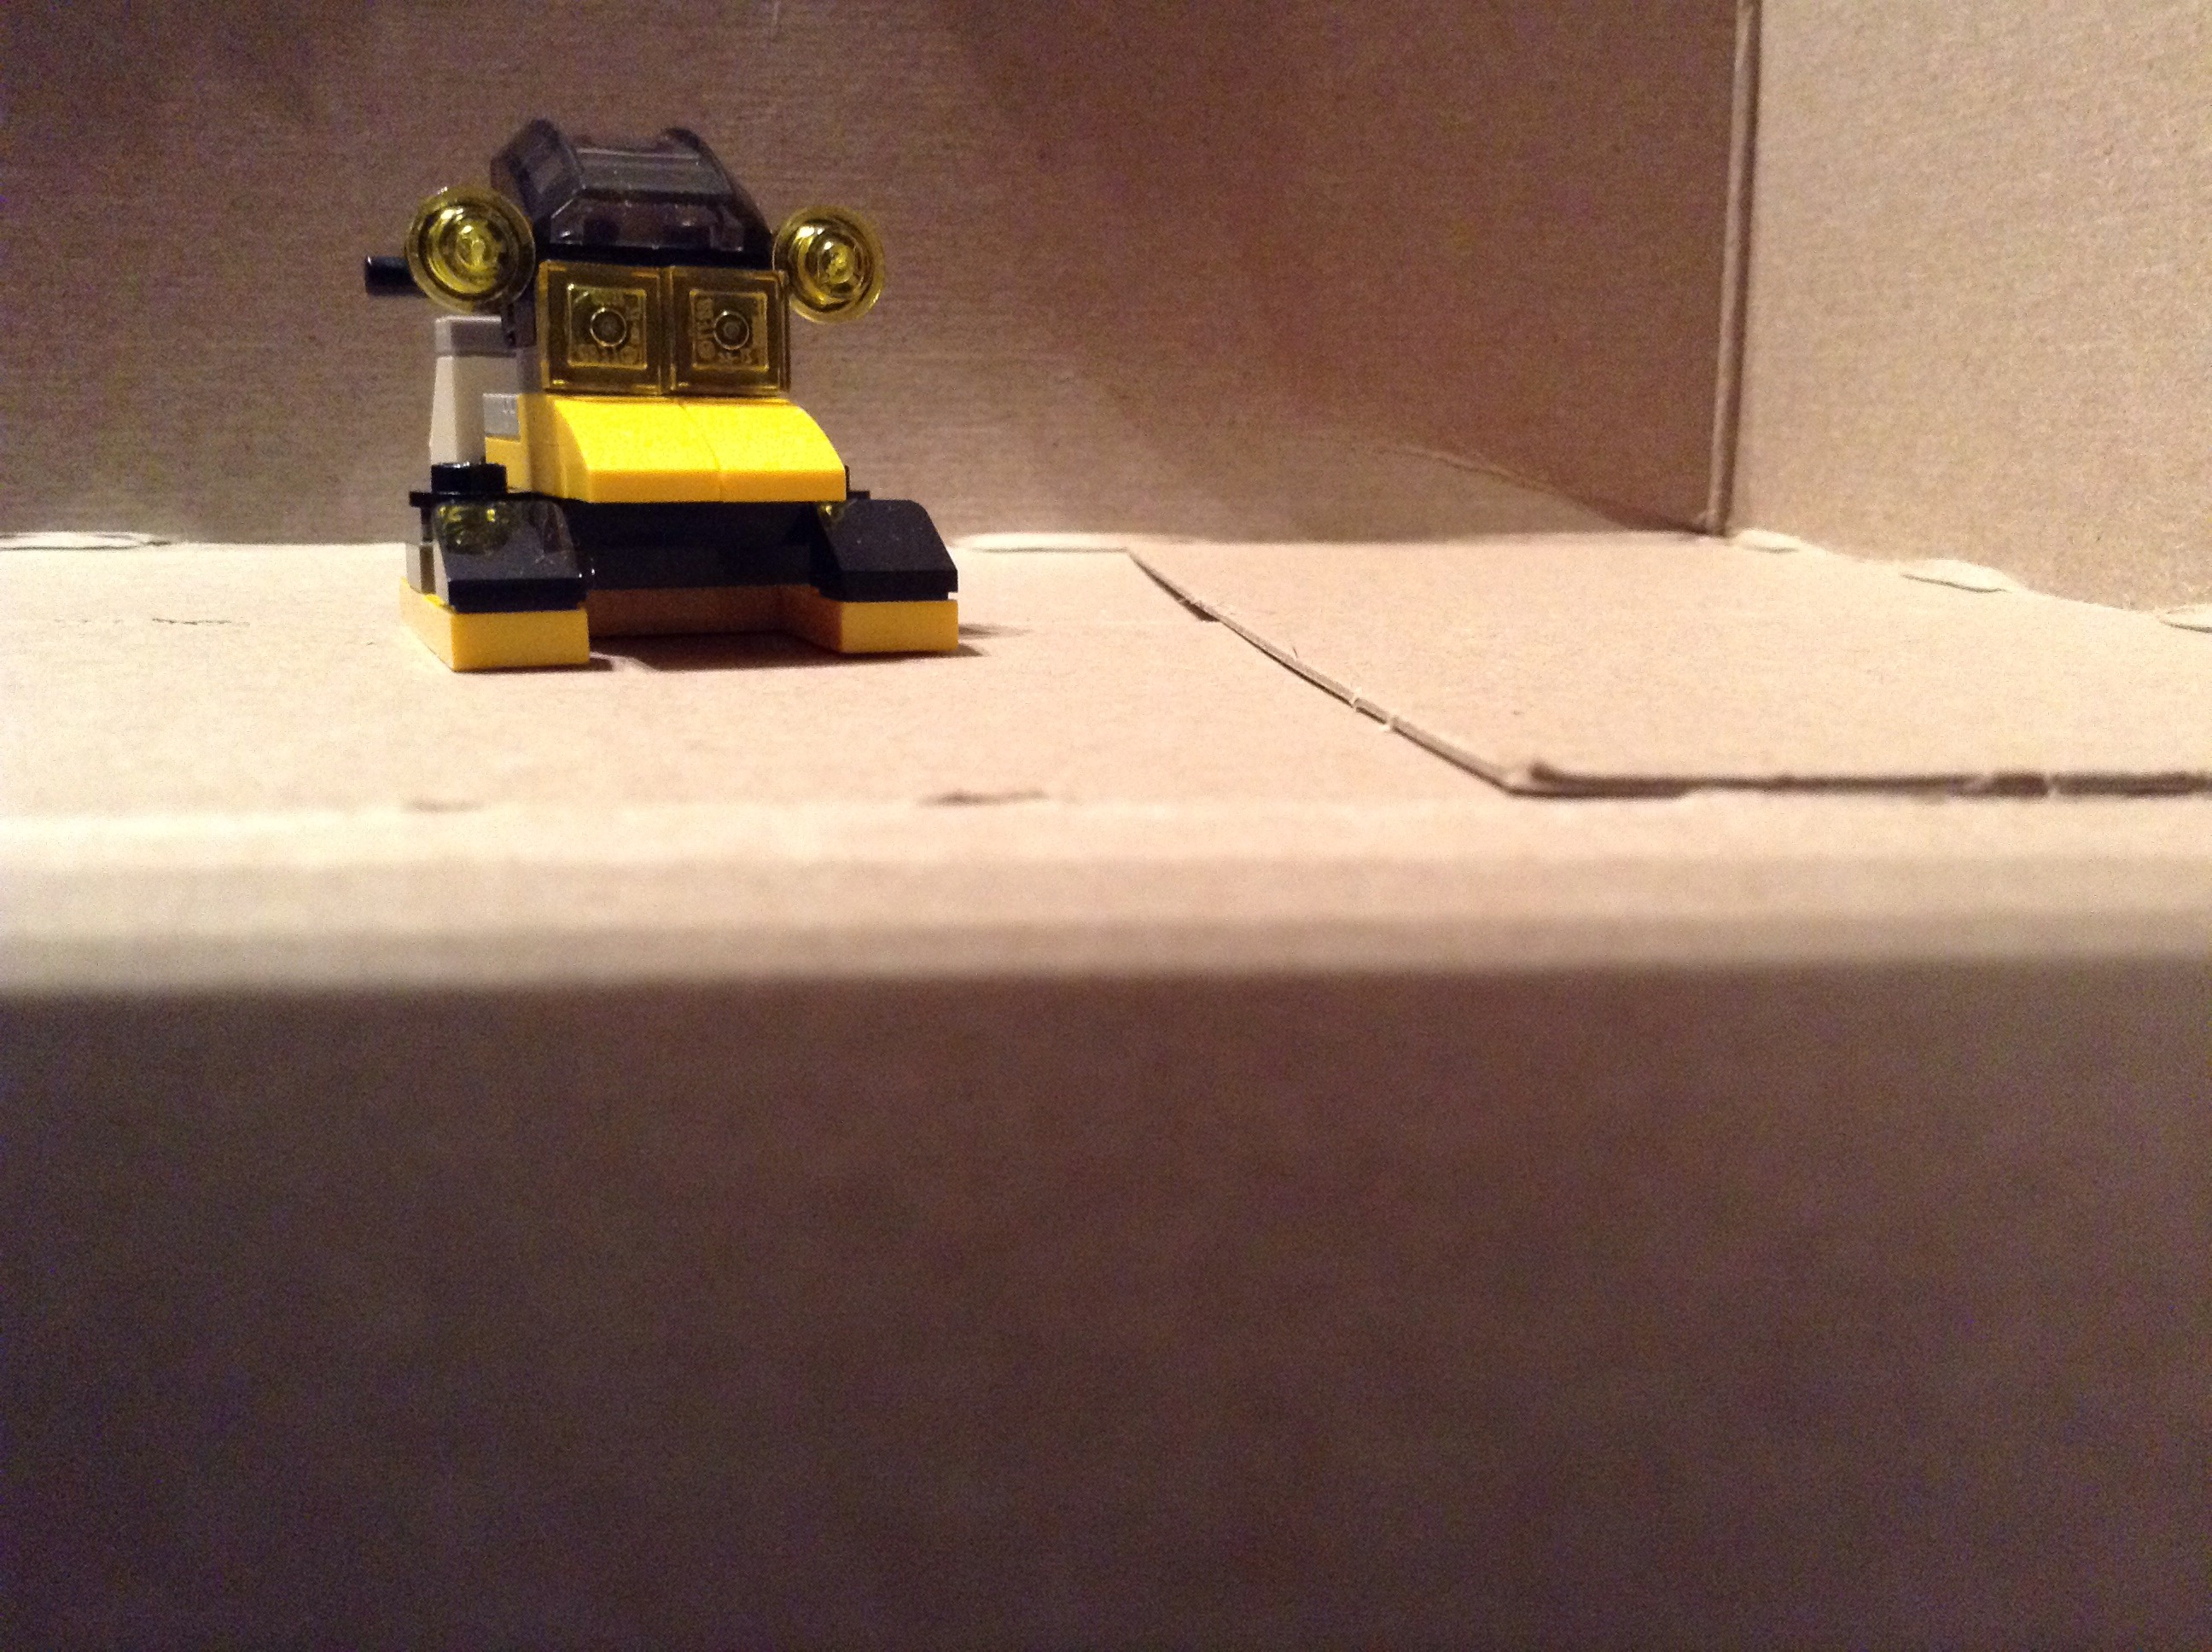 How To Make A lego Snowmobile